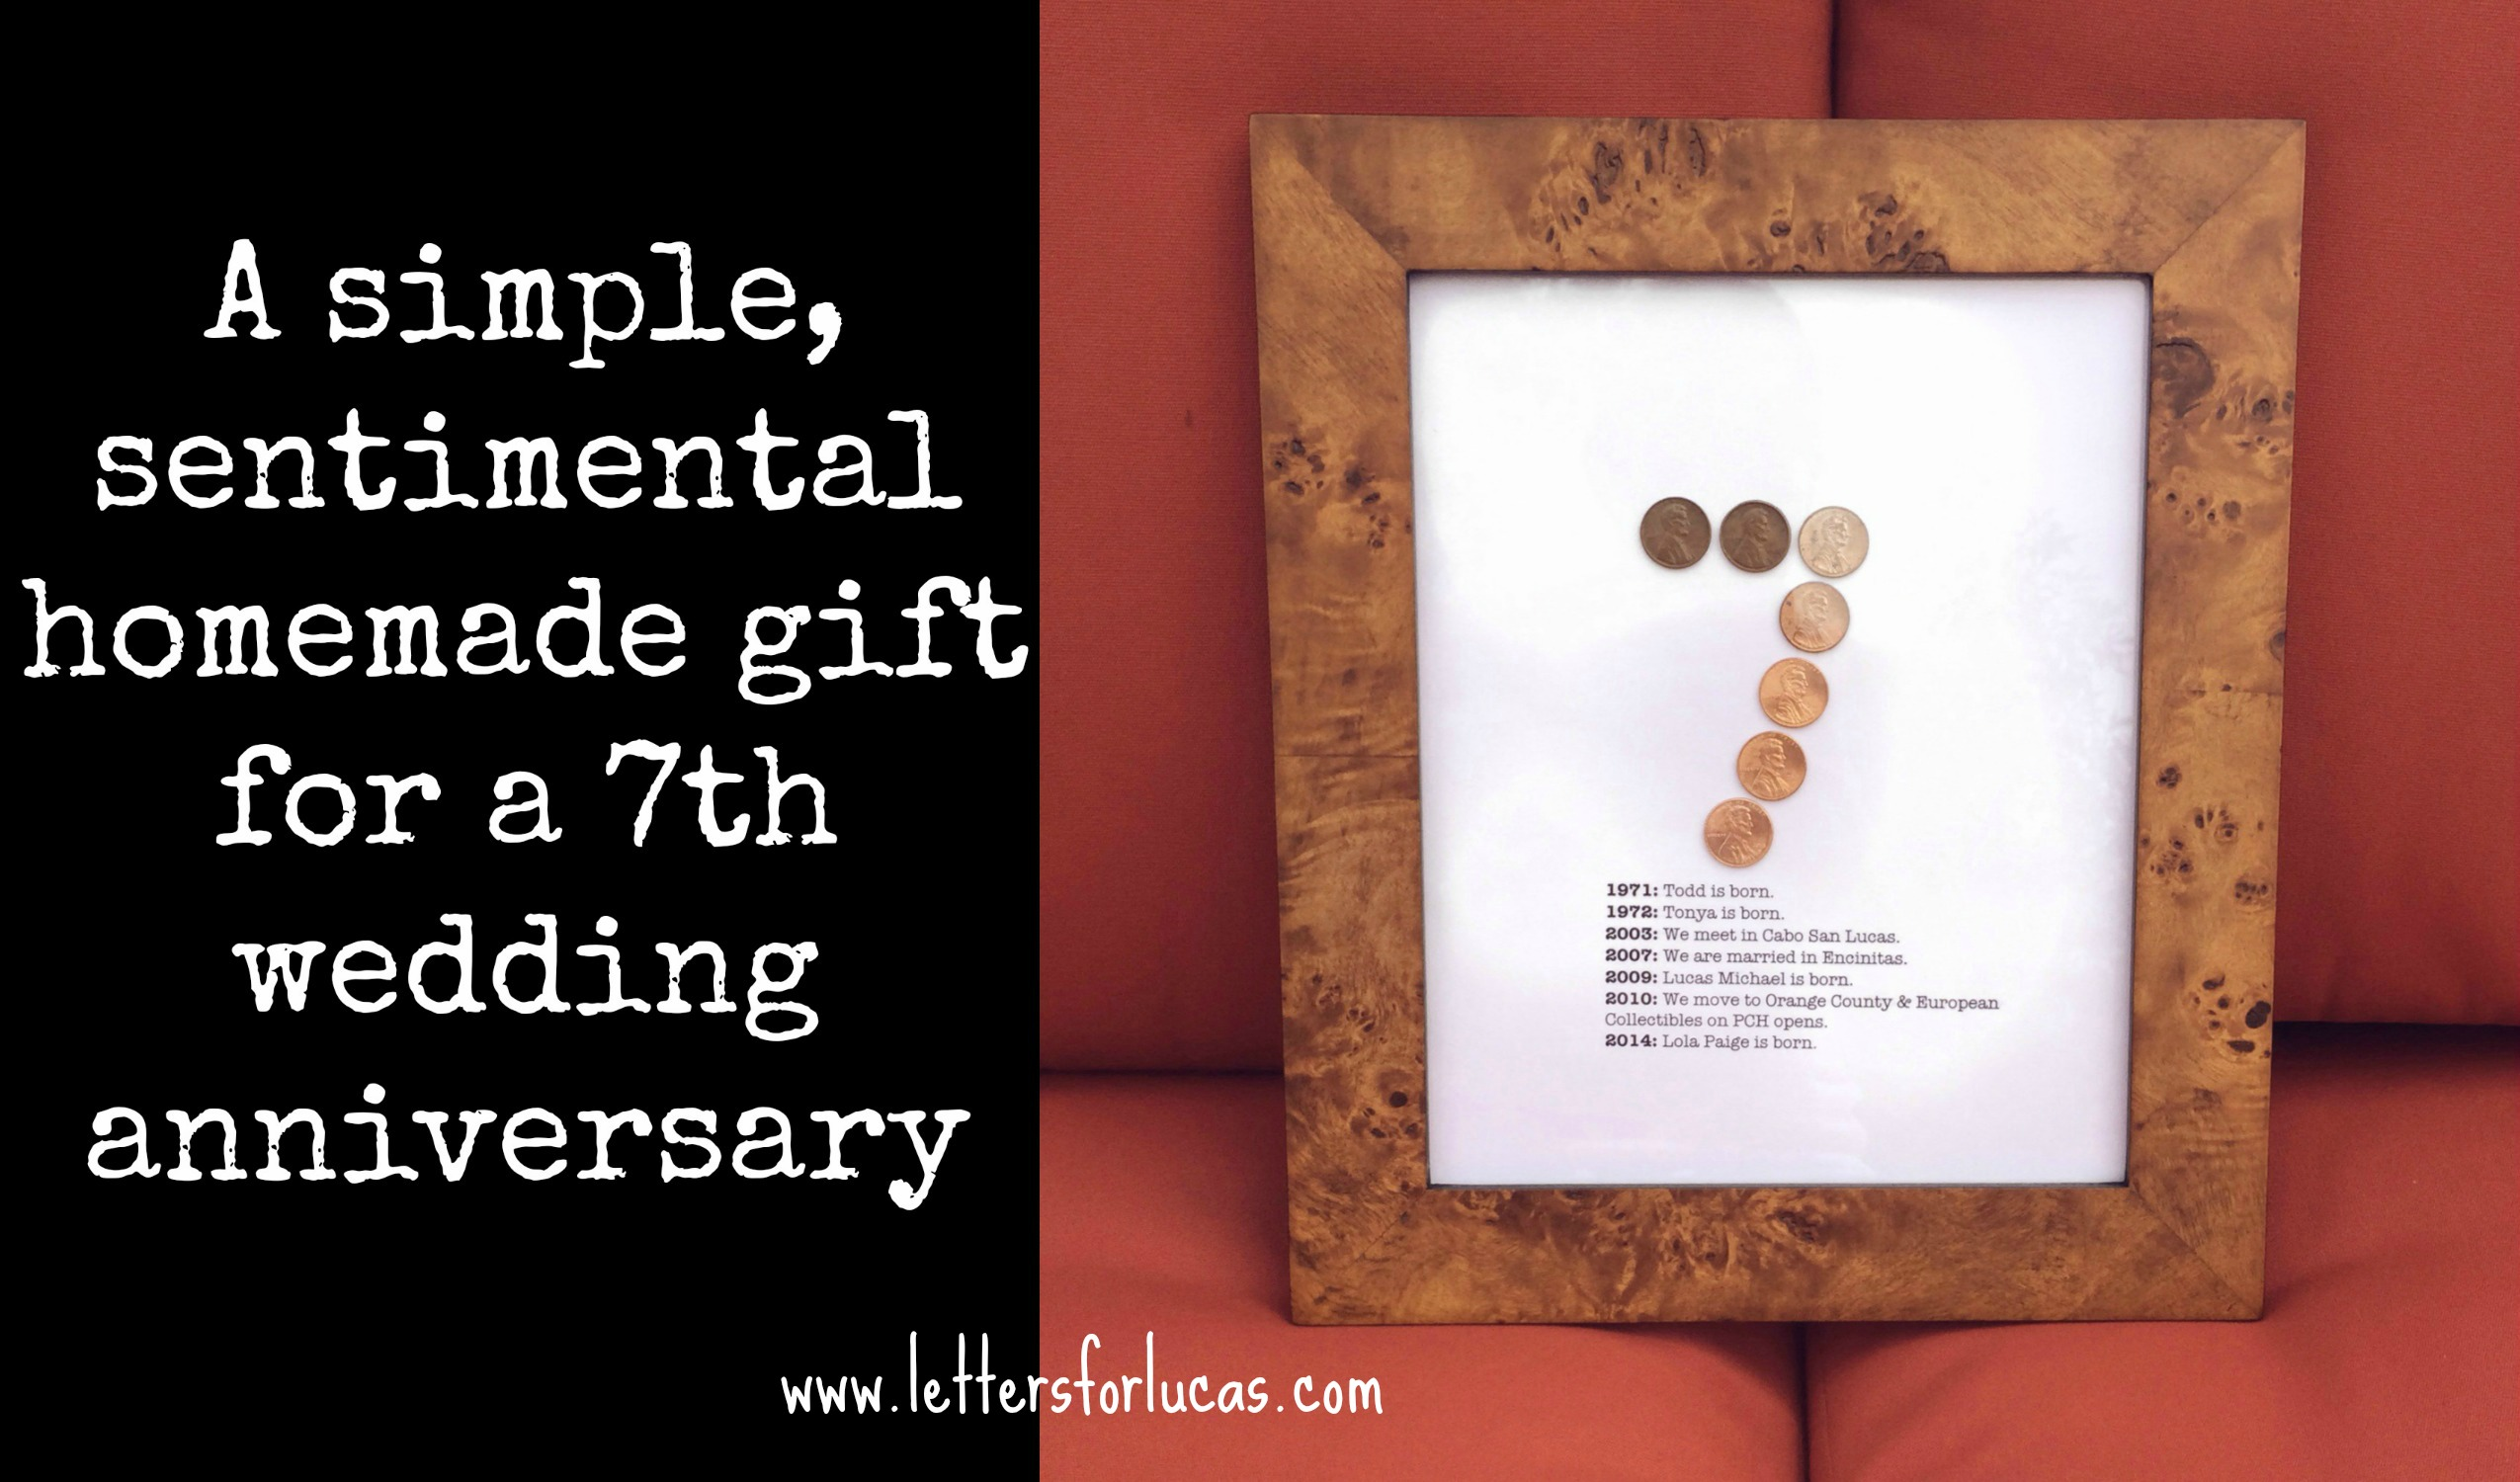 1st Wedding Anniversary Gifts For Him In India : simple gift idea for your 7th wedding anniversary